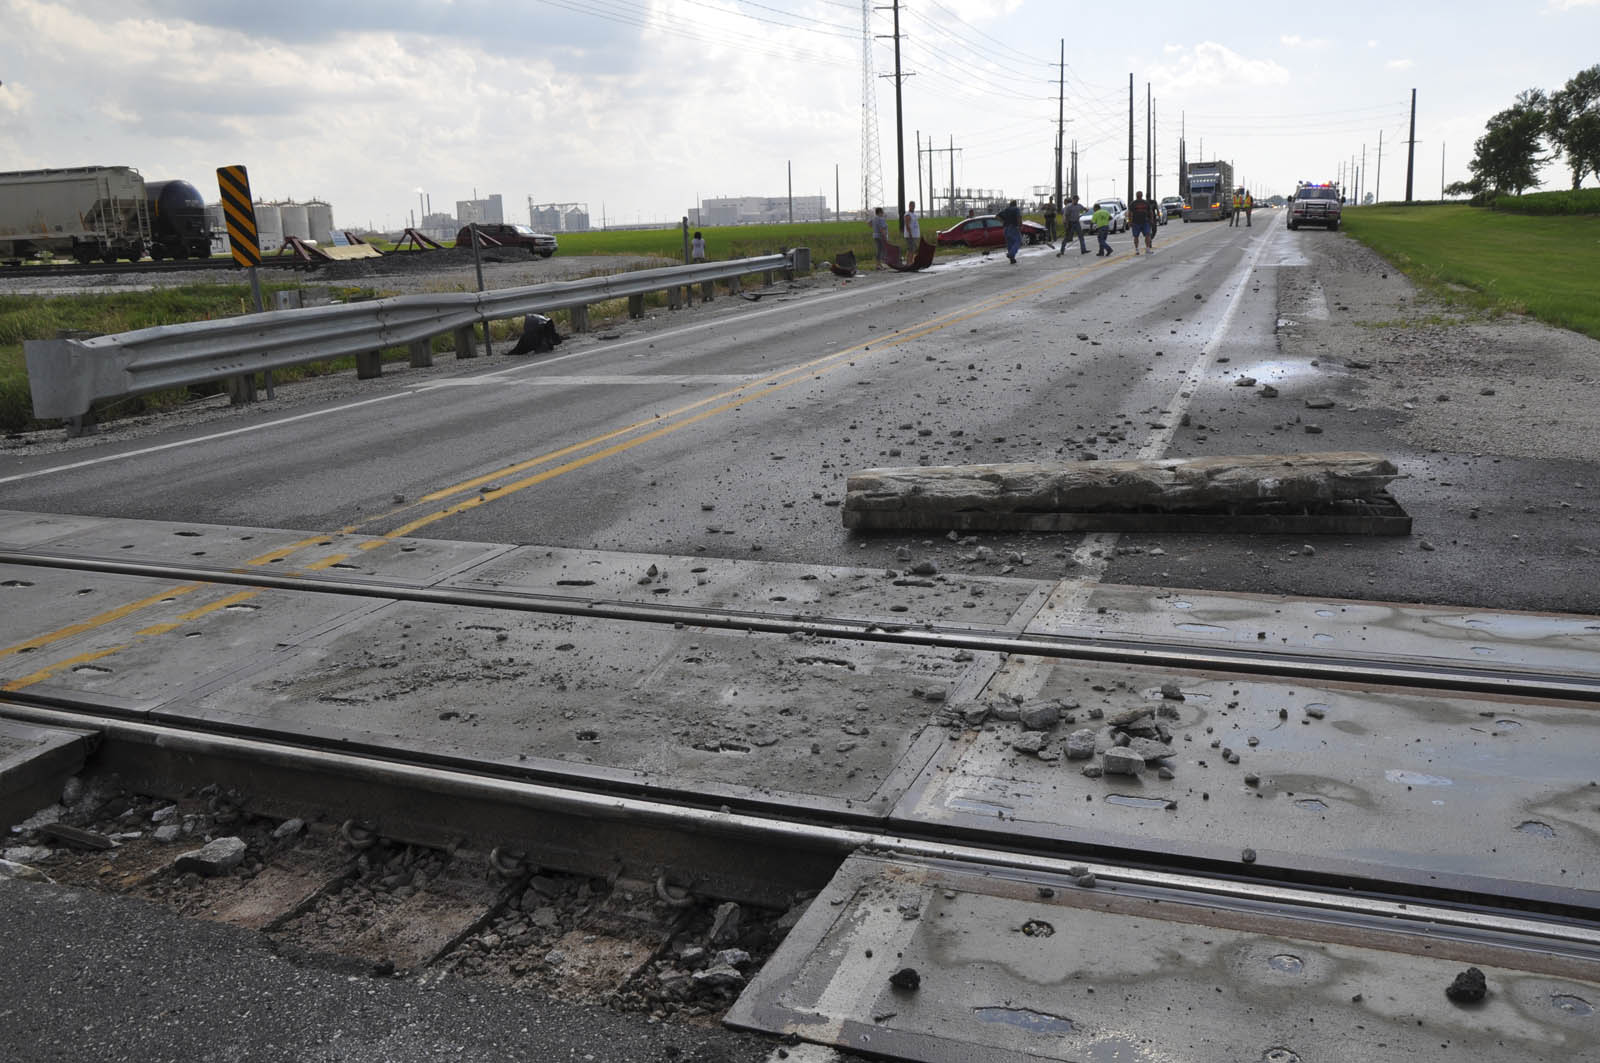 One Person Hurt In Accident At Railroad Tracks News